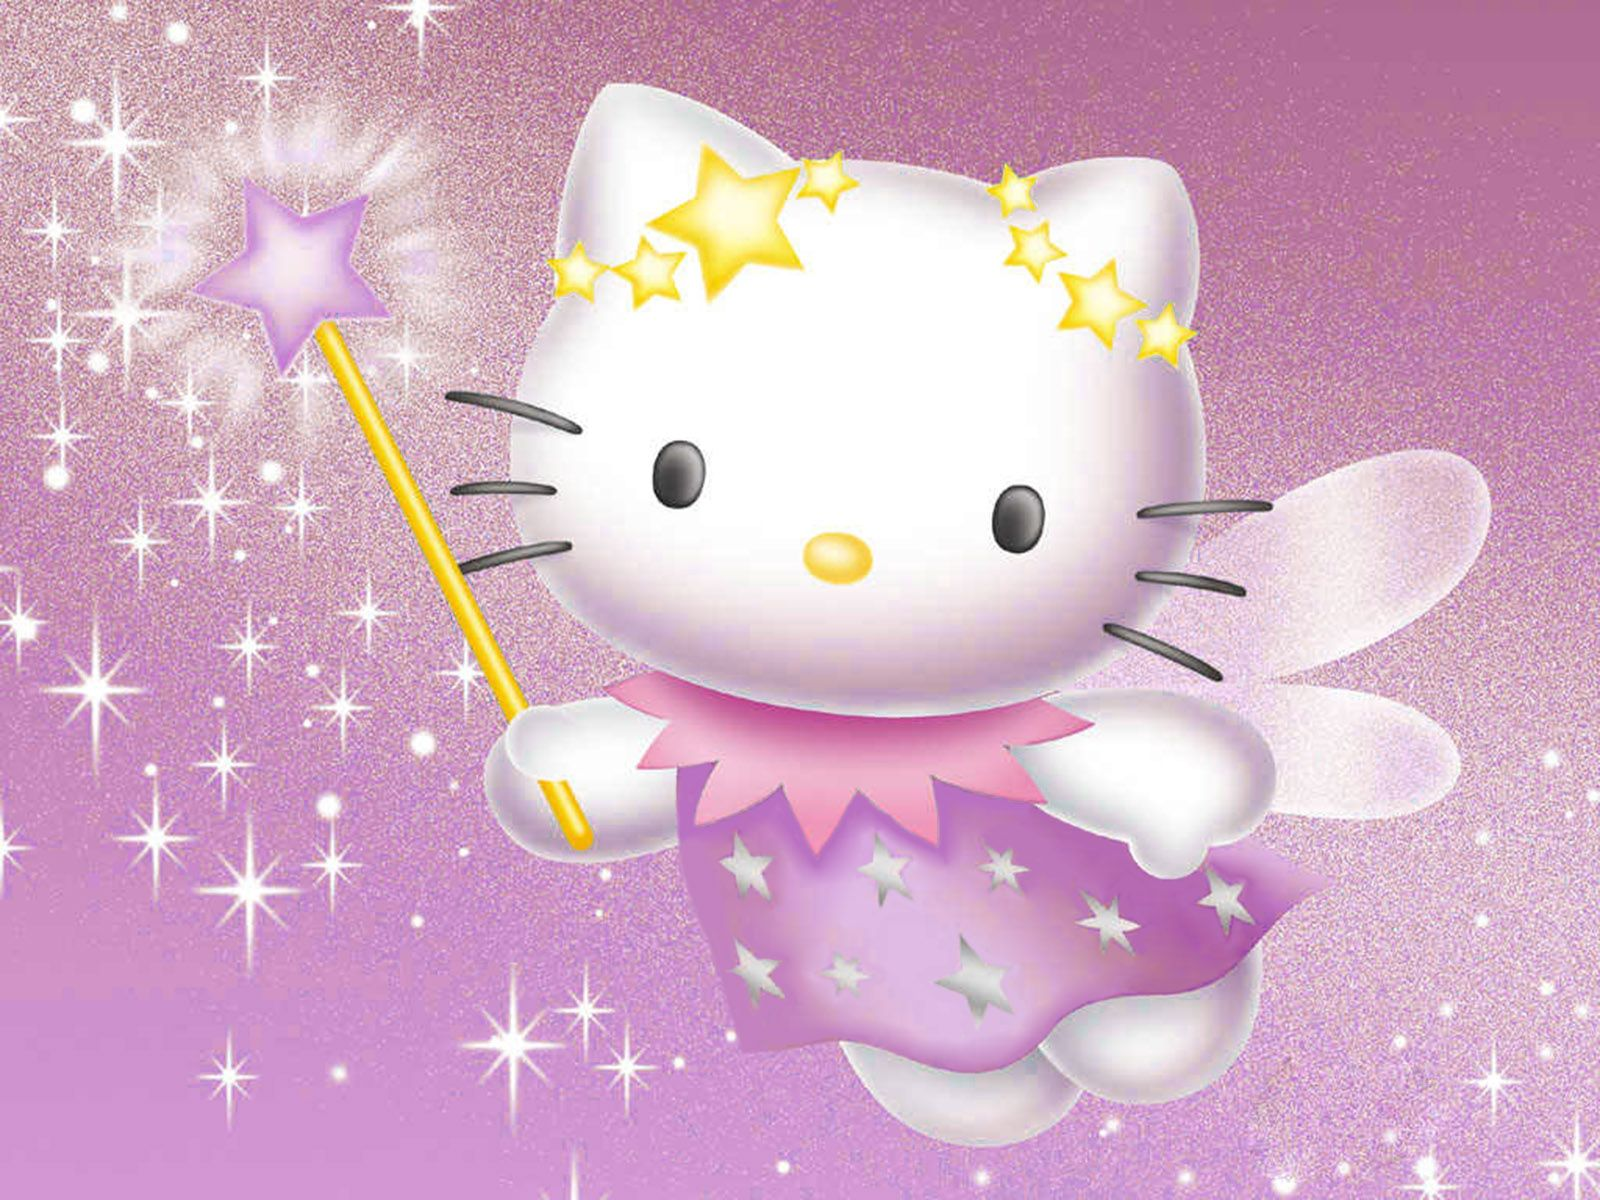 Simple Wallpaper Hello Kitty Animated - f0469902511238452ad6119631d96bda  Gallery_288495.jpg